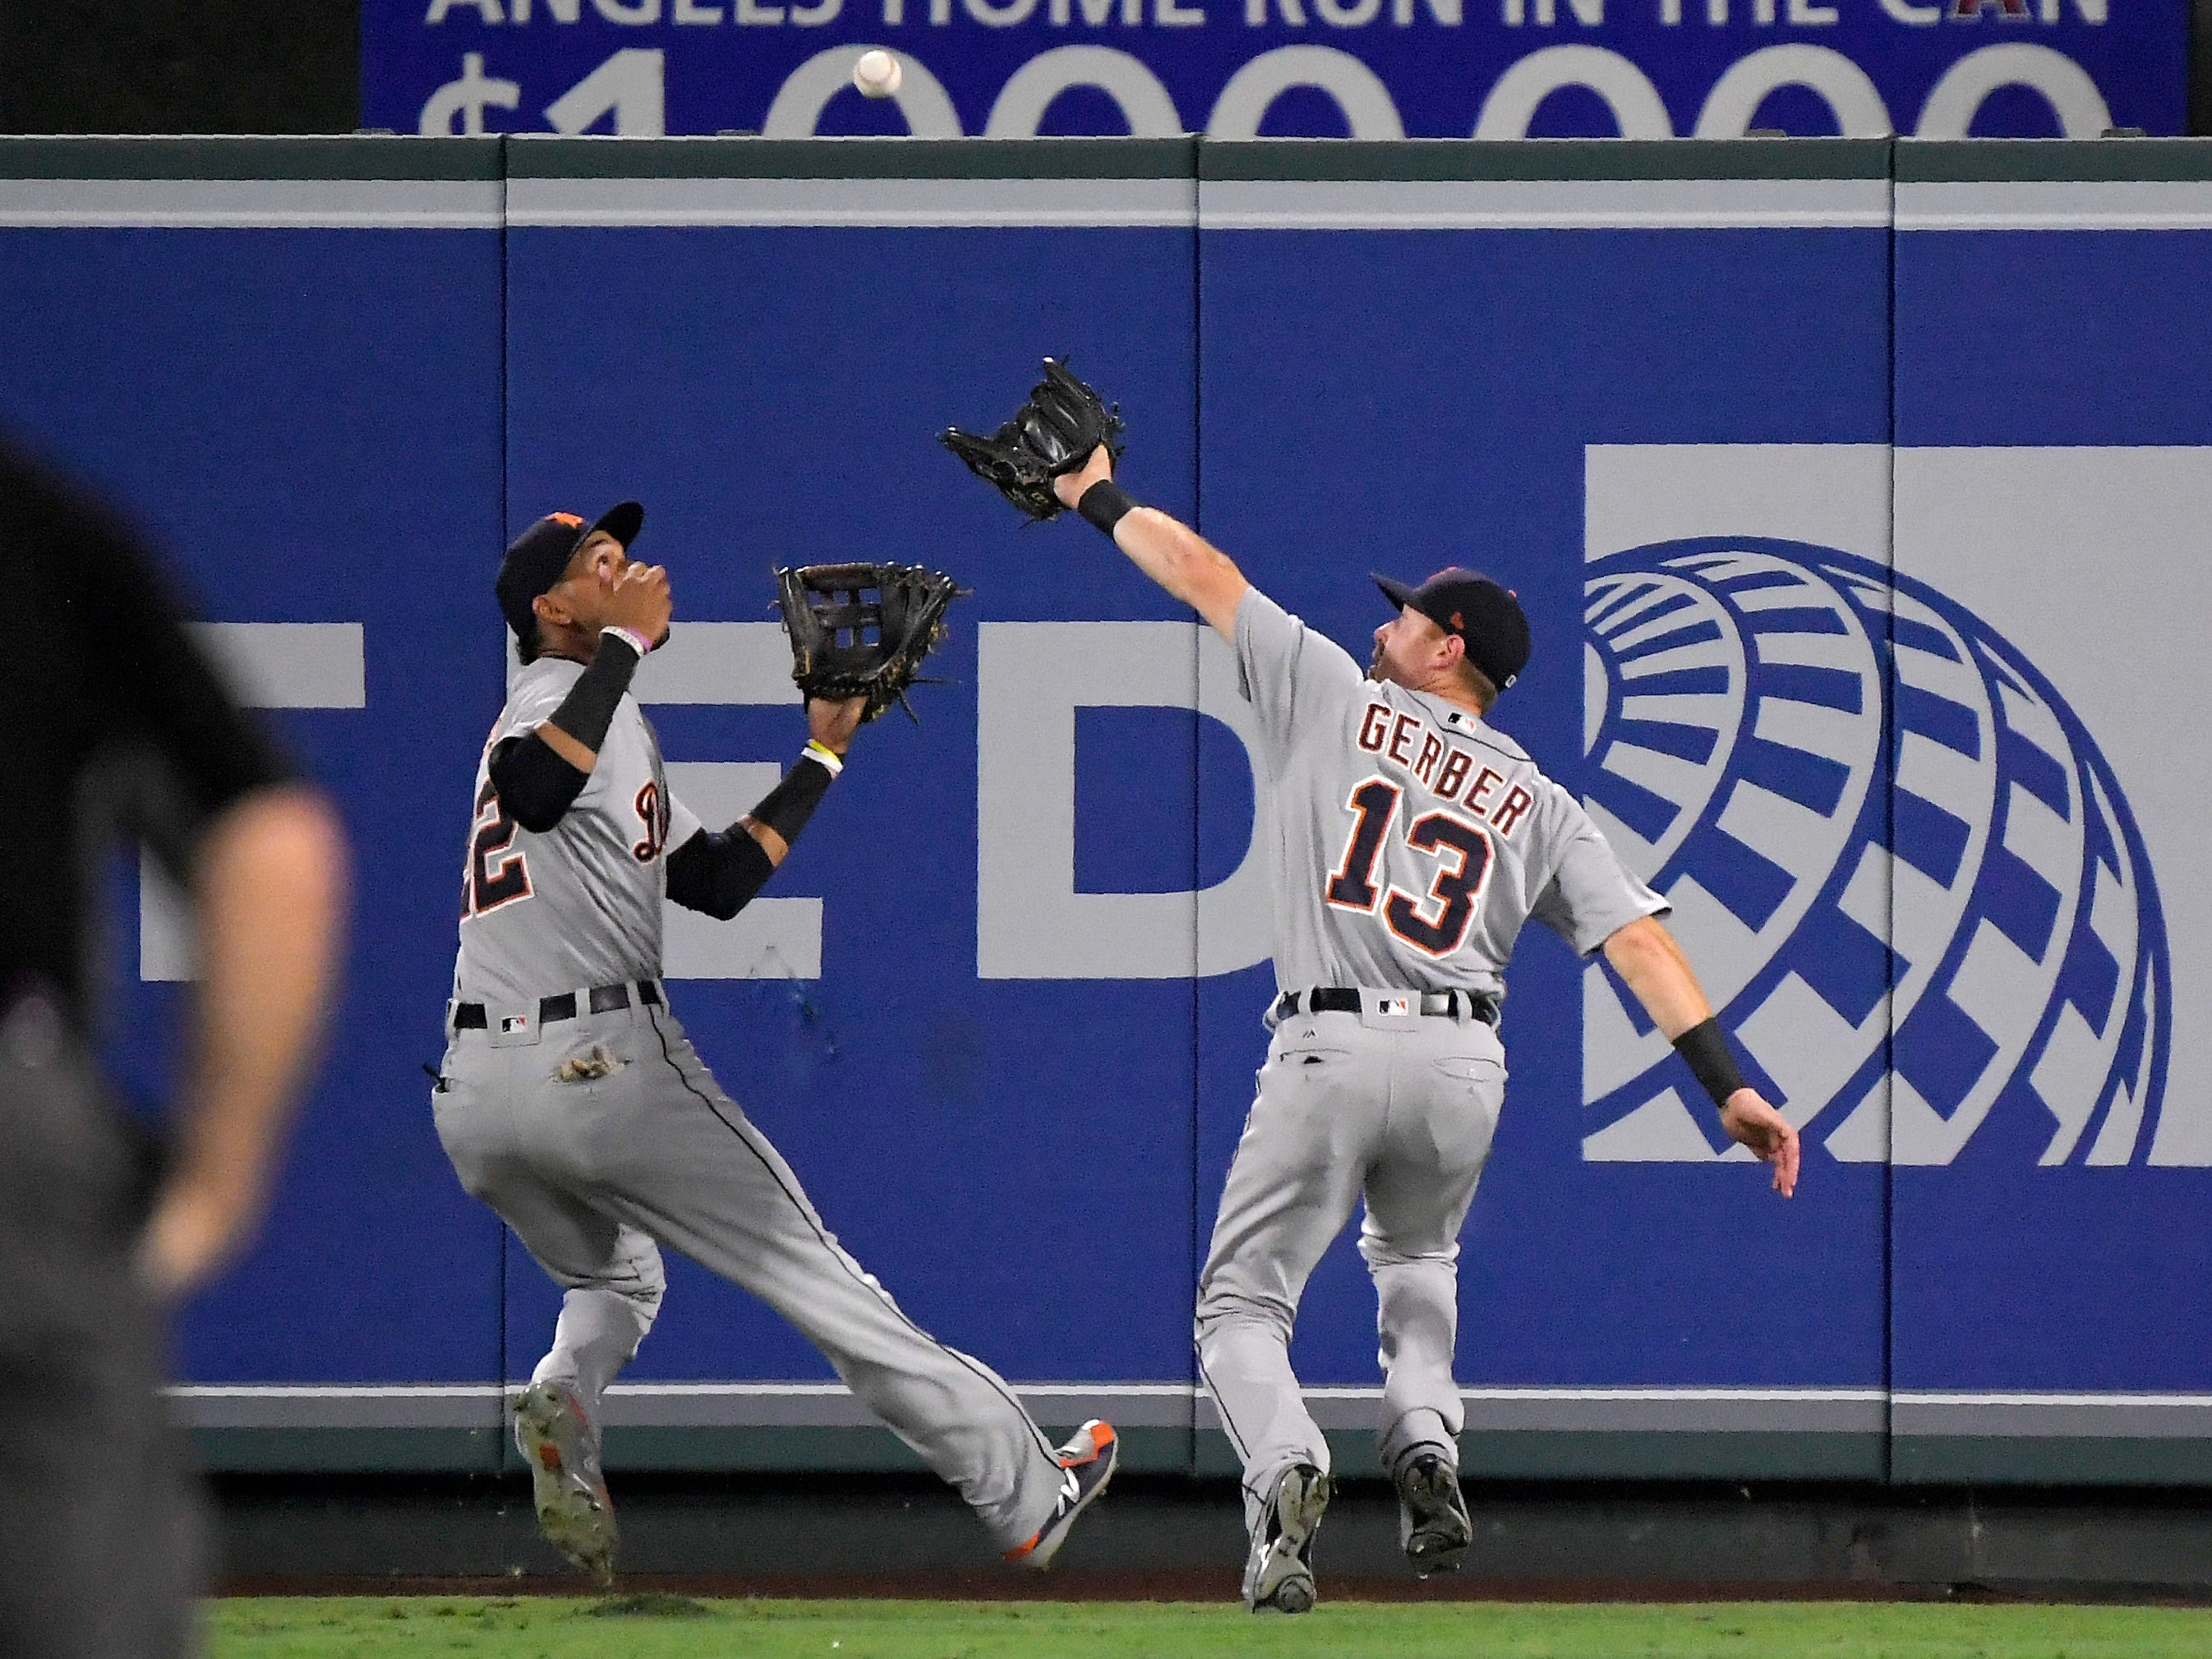 Detroit Tigers center fielder Mike Gerber, right, makes a catch on a ball hit by Los Angeles Angels' Kole Calhoun before colliding with left fielder Victor Reyes during the third inning.